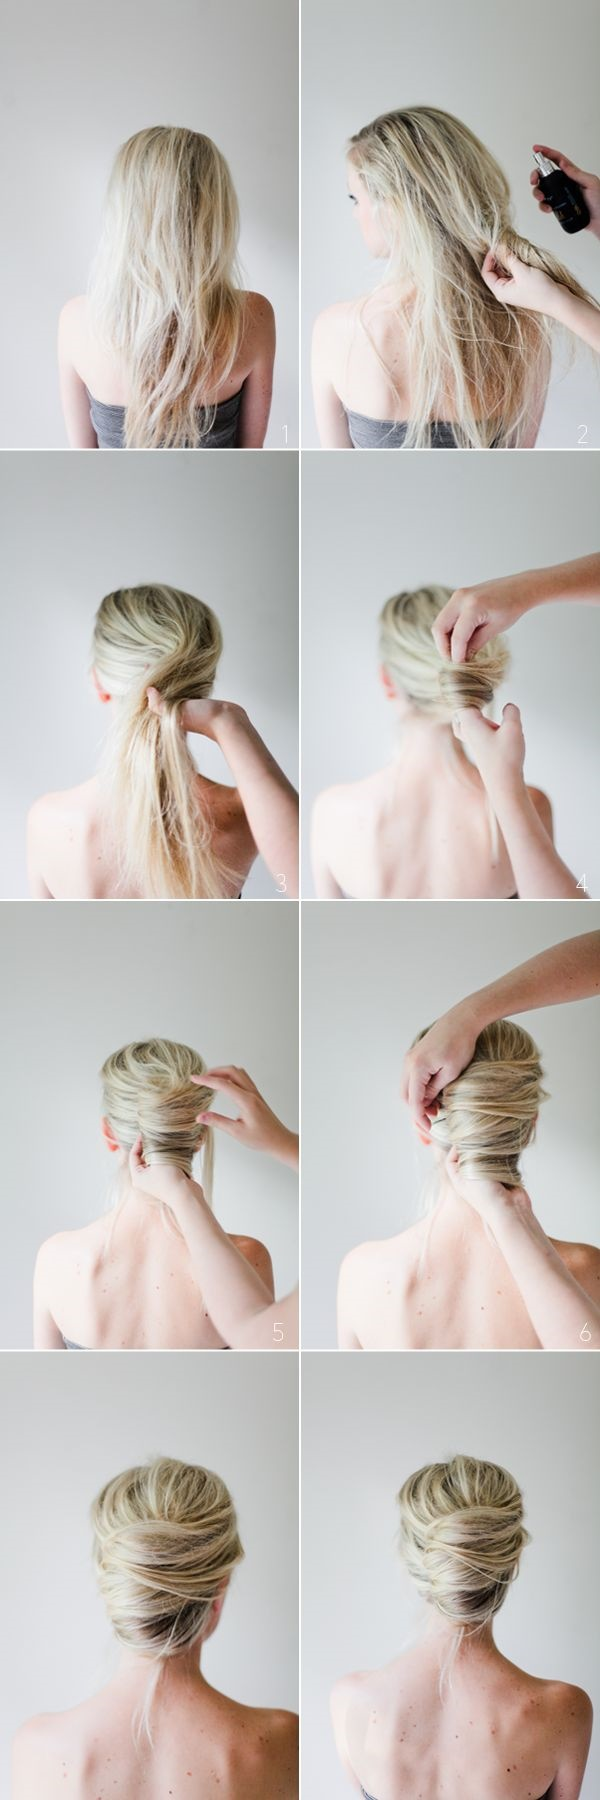 Messy Hairstyles for Long and Short Hair1 (9)